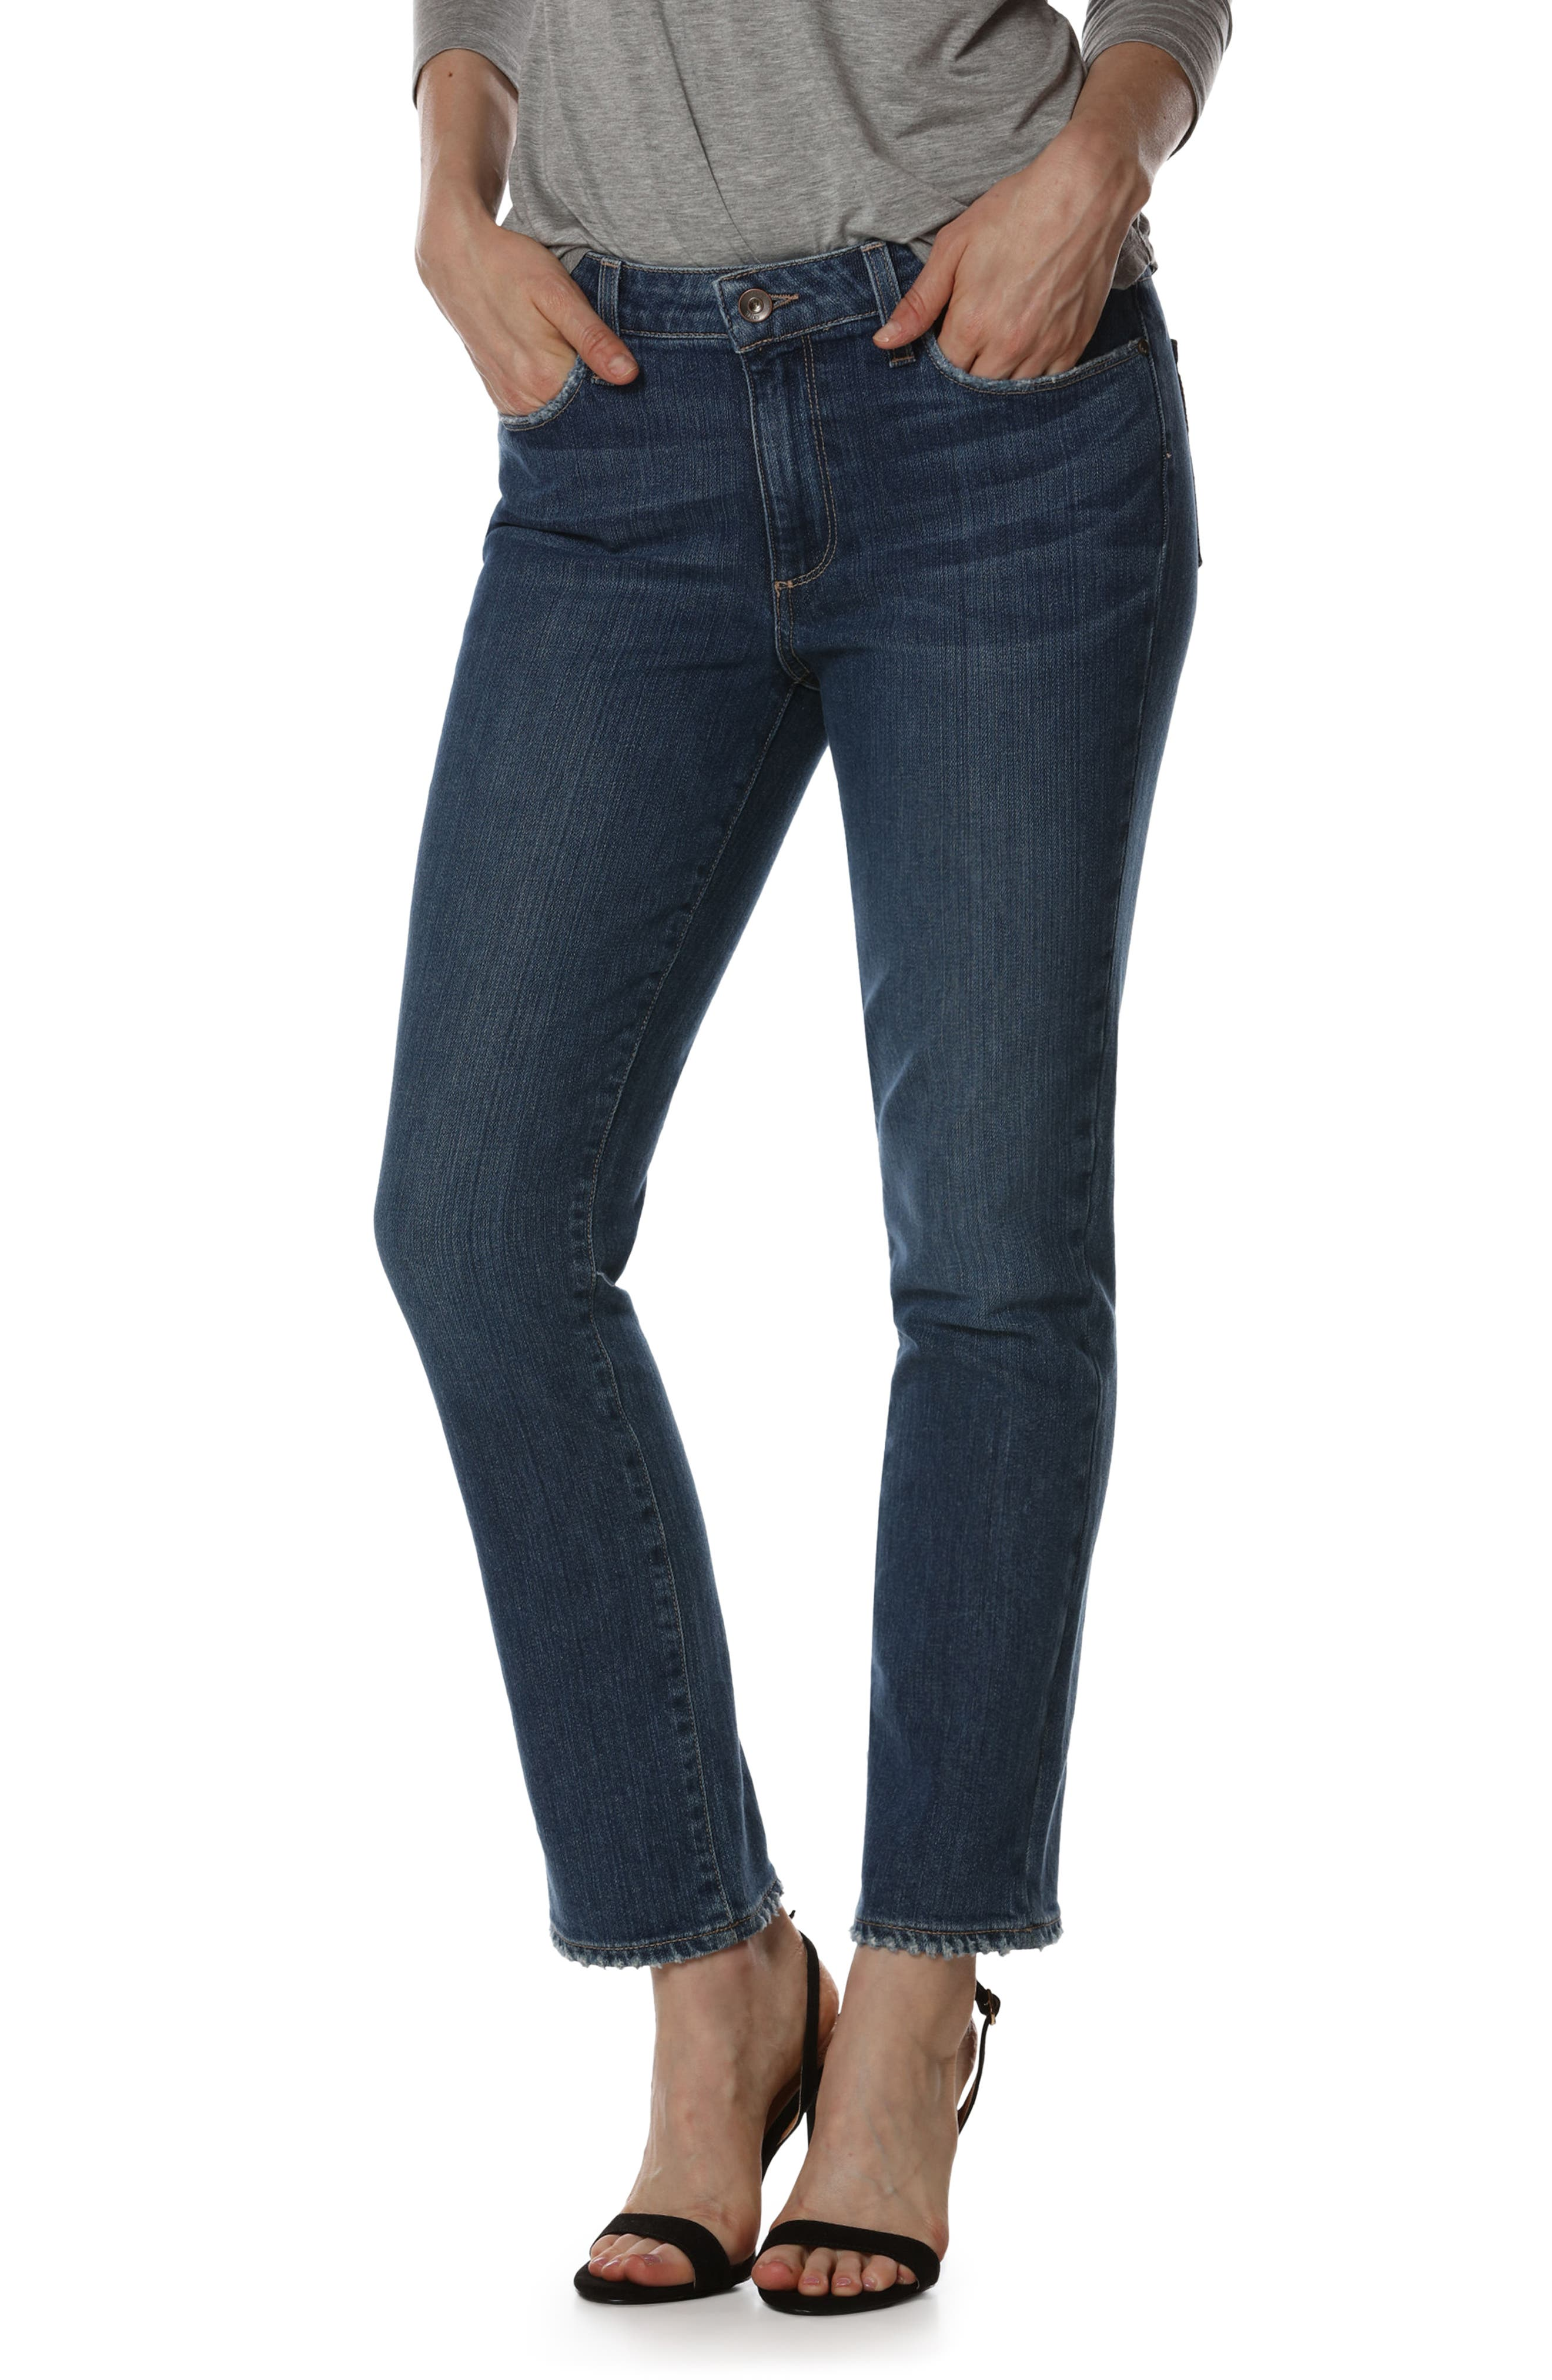 Jacqueline High Waist Ankle Straight Leg Jeans,                             Main thumbnail 1, color,                             Good Life Embroidery